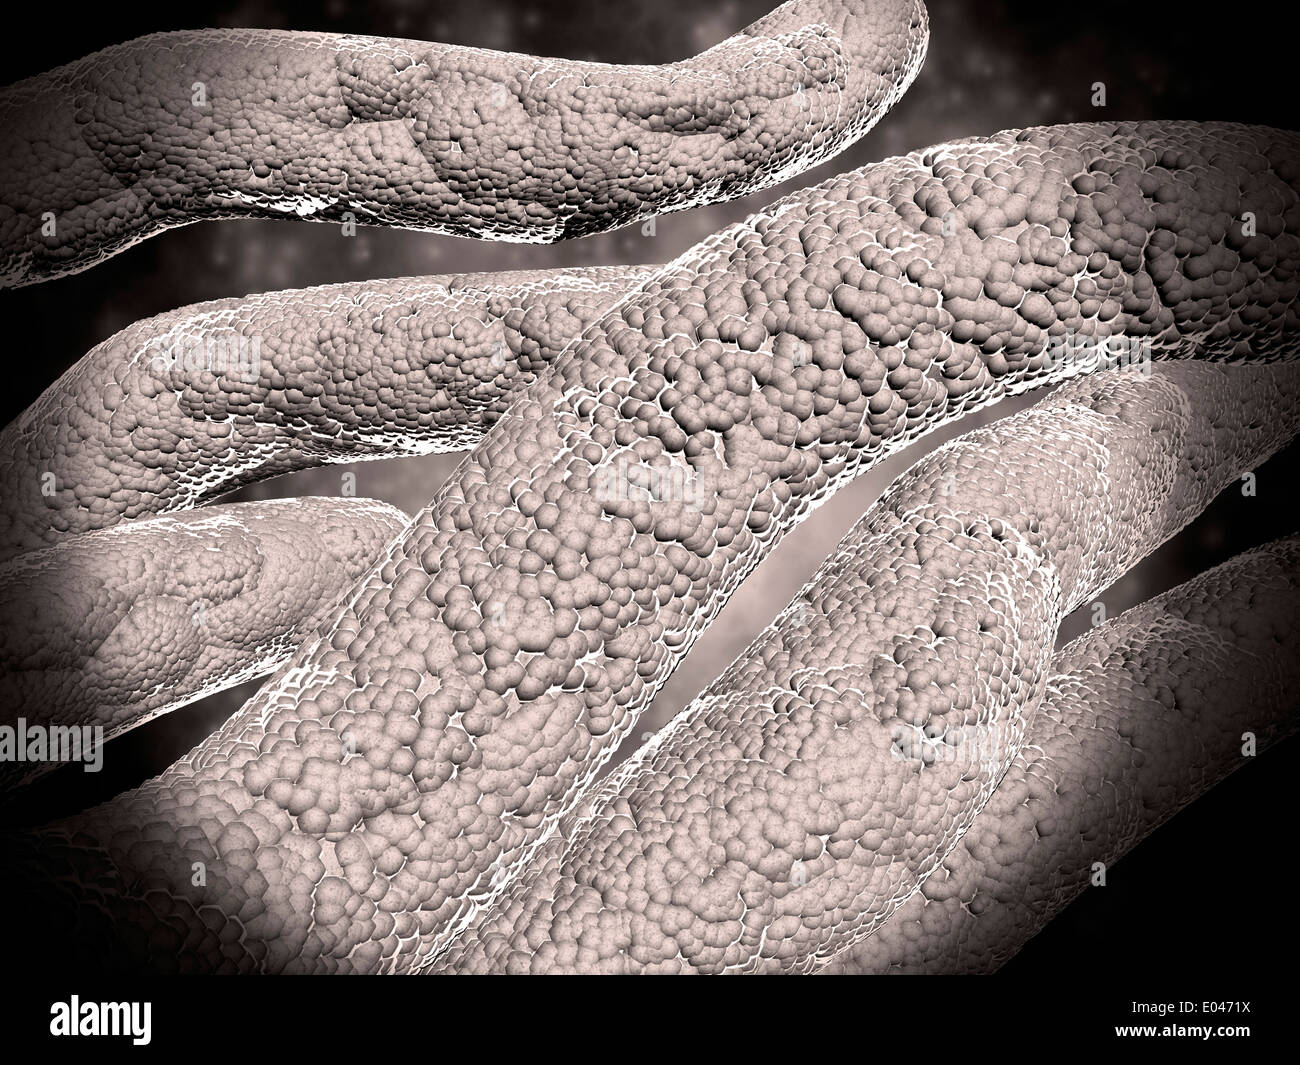 Microscopic view of corncob formation in dental plaque. - Stock Image